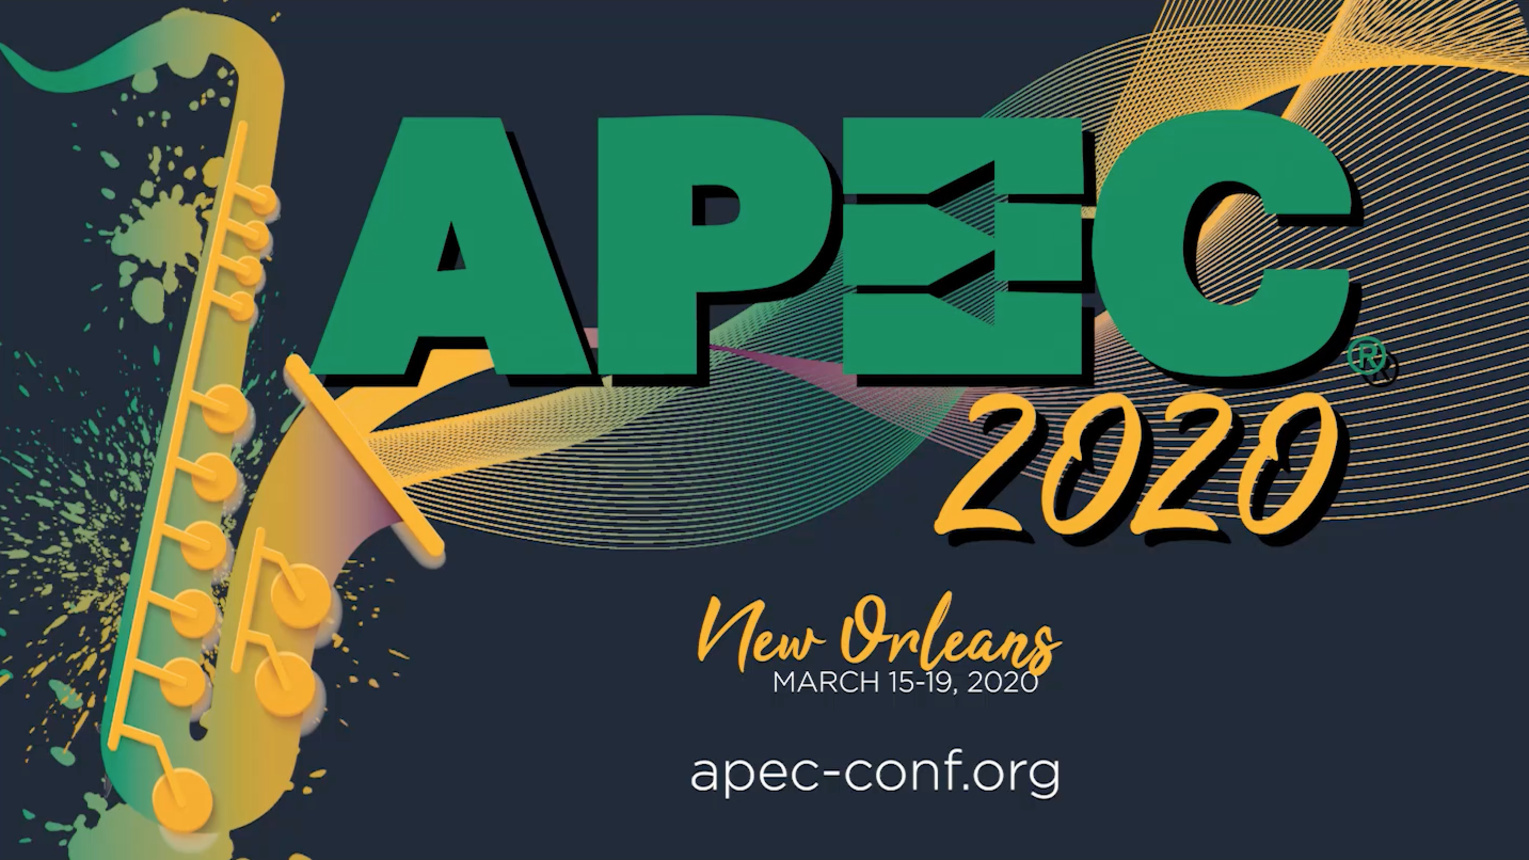 Versatile Power will be at APEC 2020!